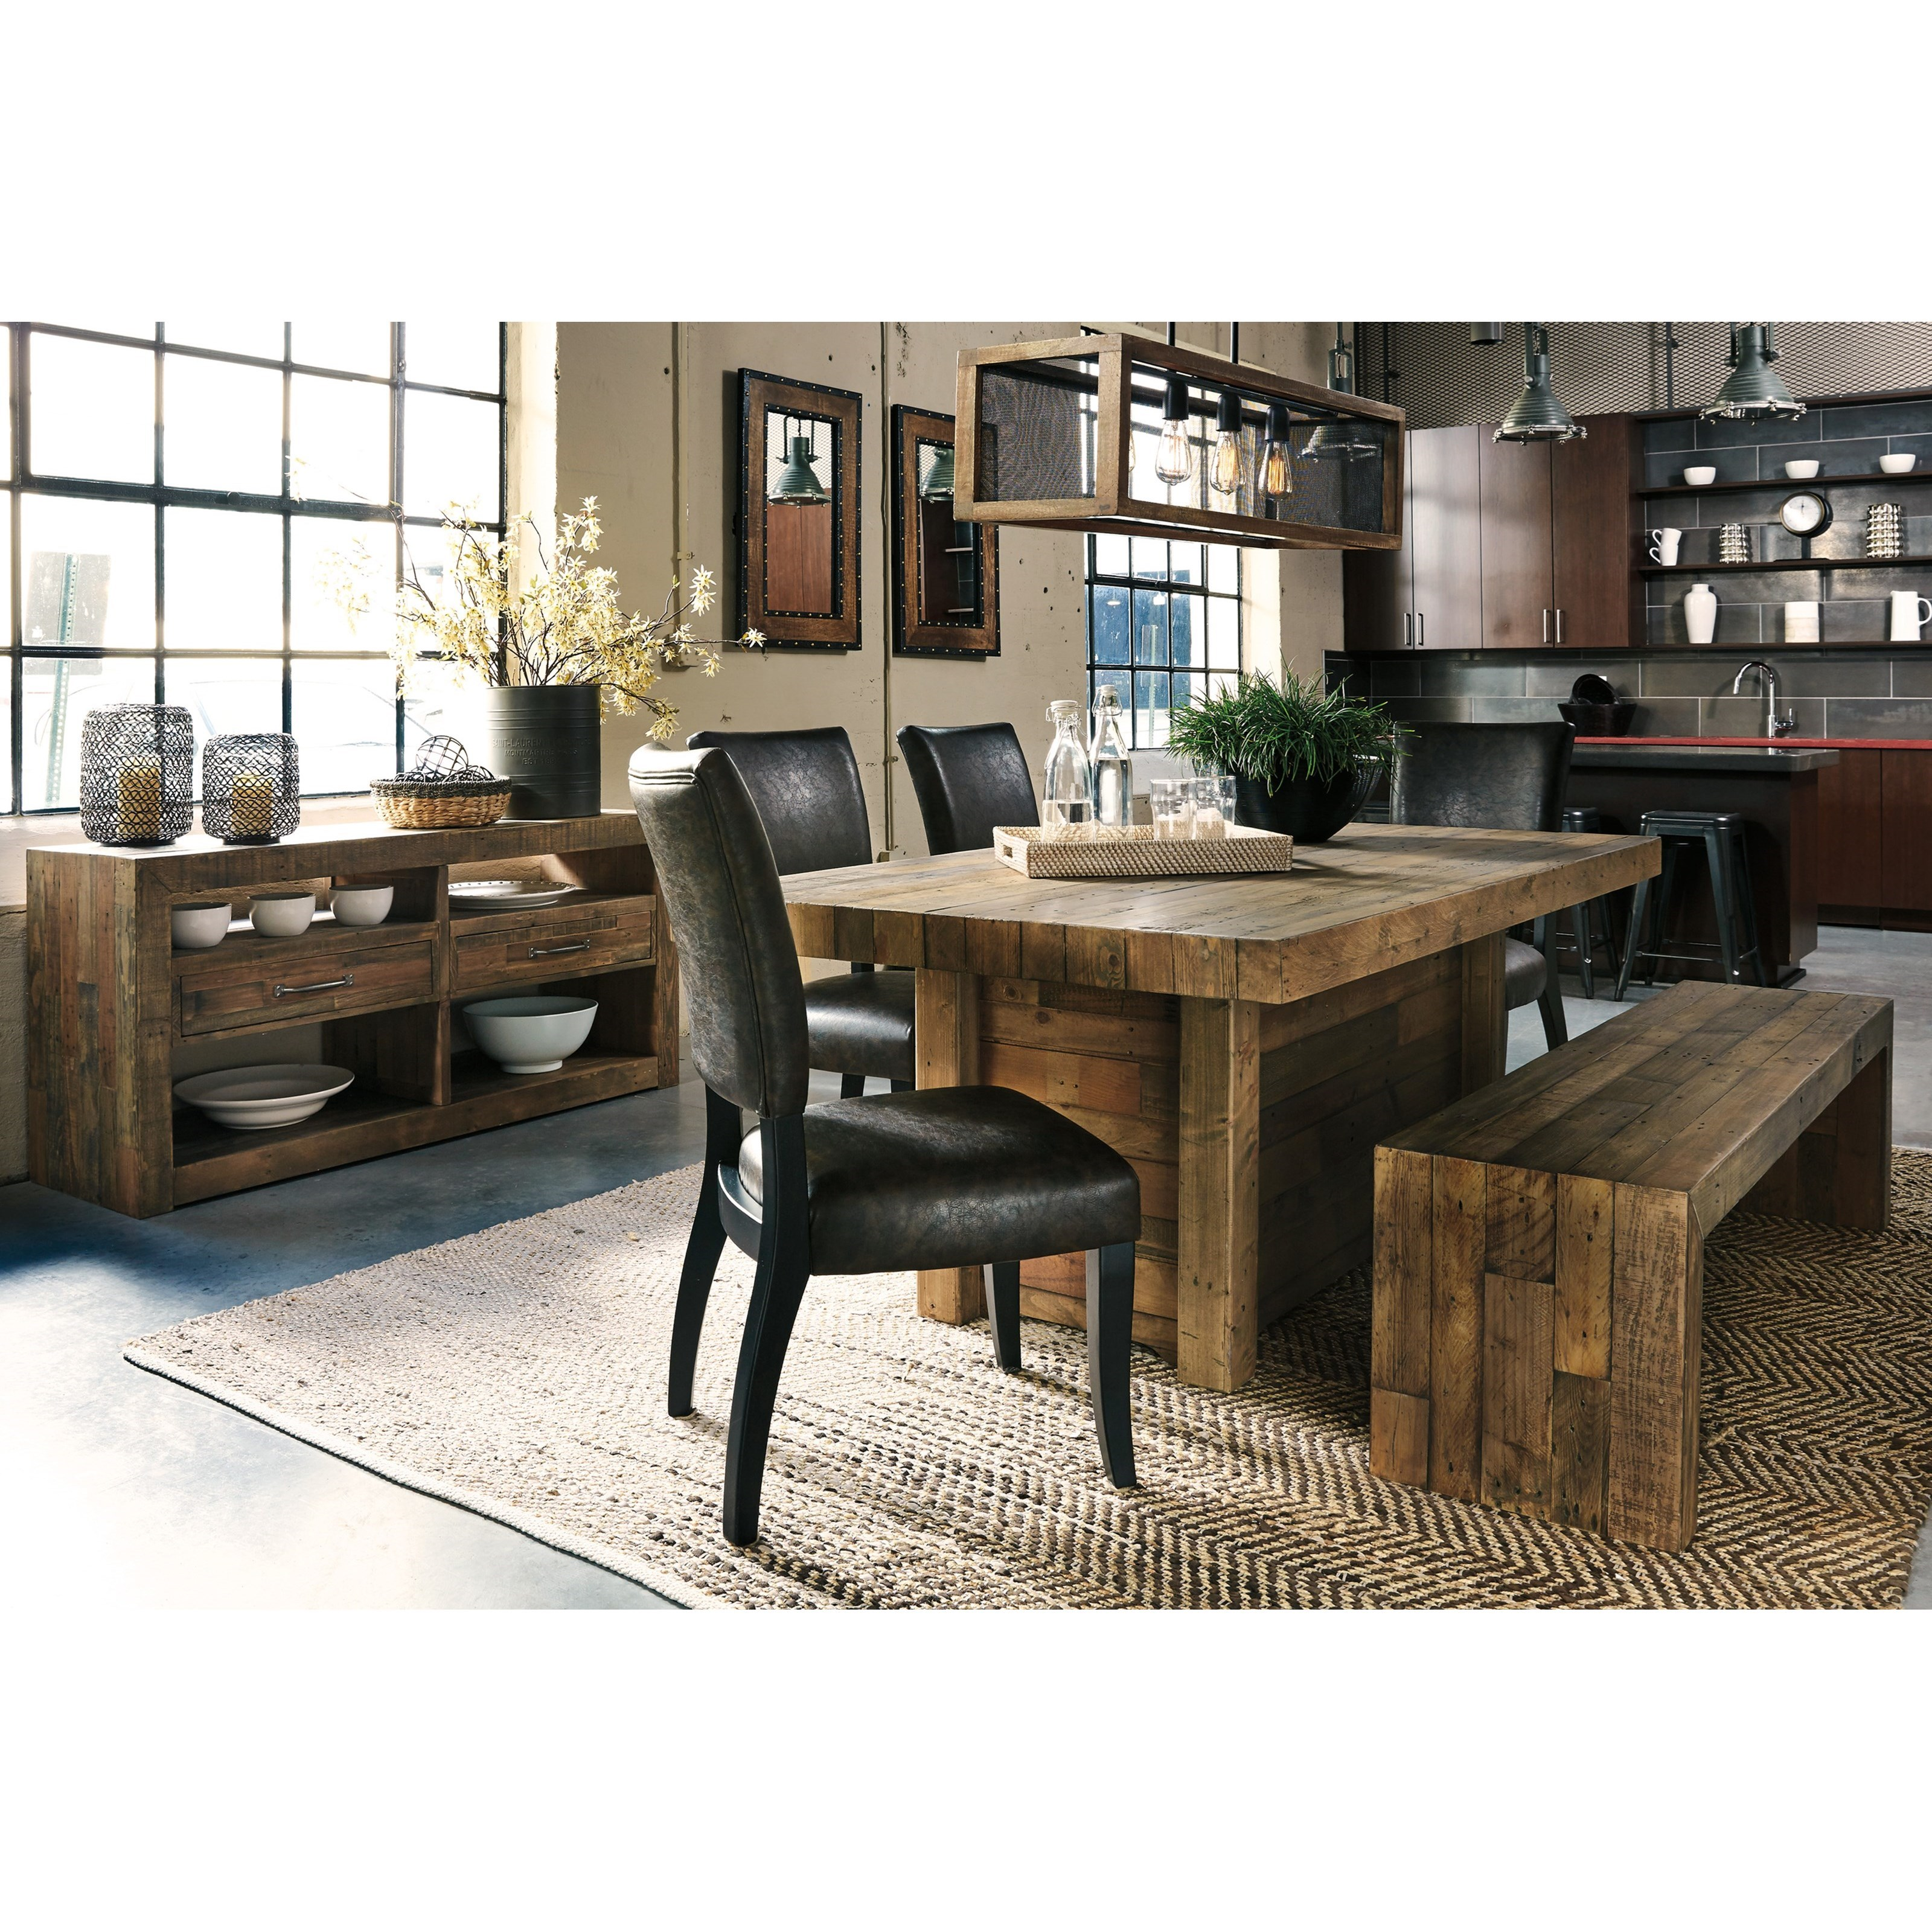 Signature Design By Ashley Sommerford D775 09 Large Dining